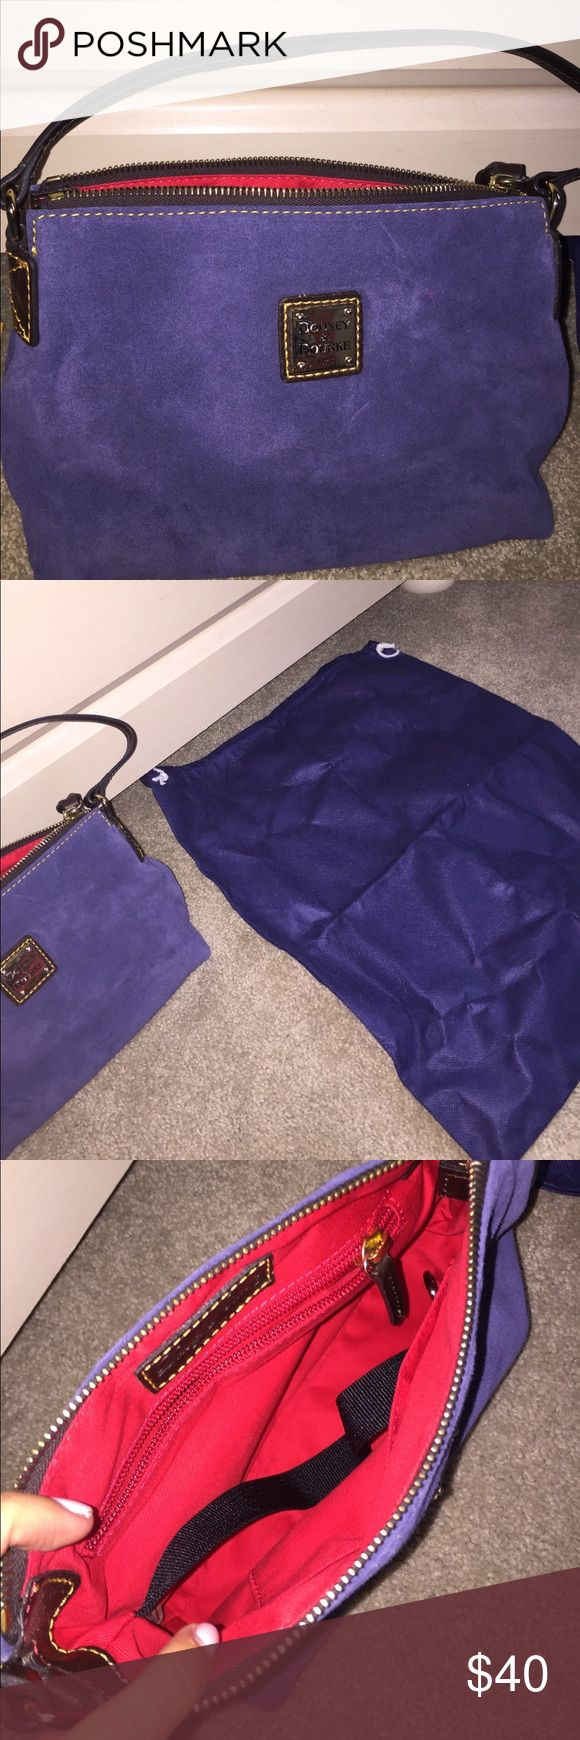 Dooney and bourke navy purse Never used! Comes with bag to protect purse Dooney & Bourke Bags